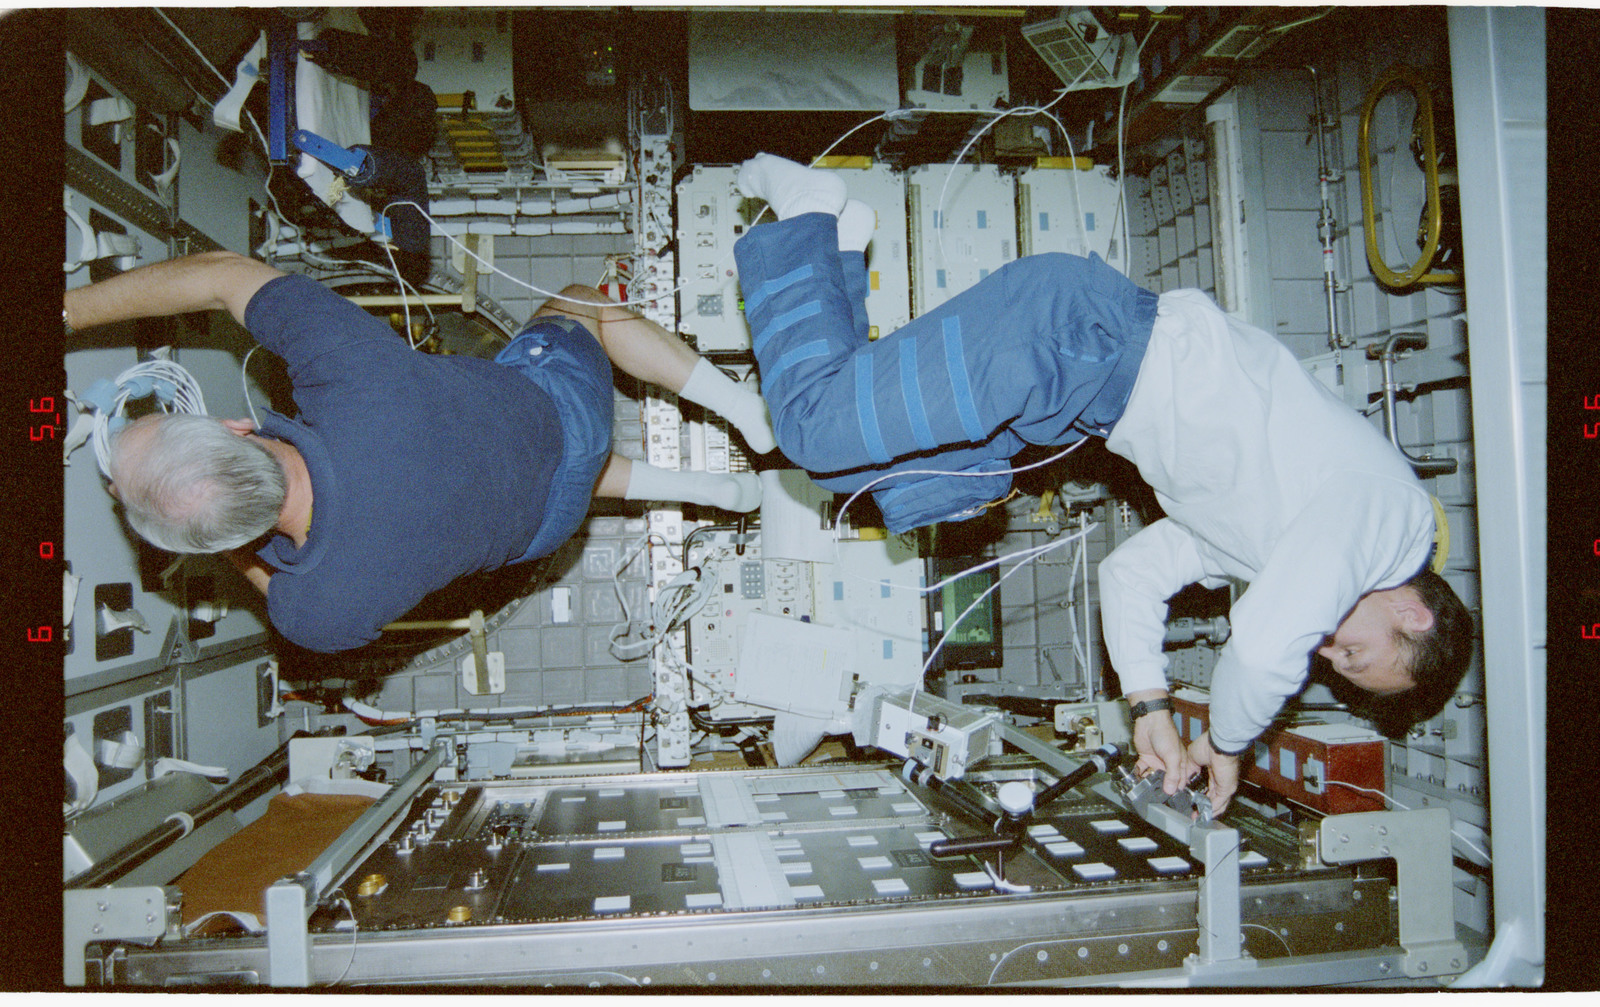 STS079-342-021 - STS-079 - STS-79 crew activities in the Spacehab module and the transfer tunnel